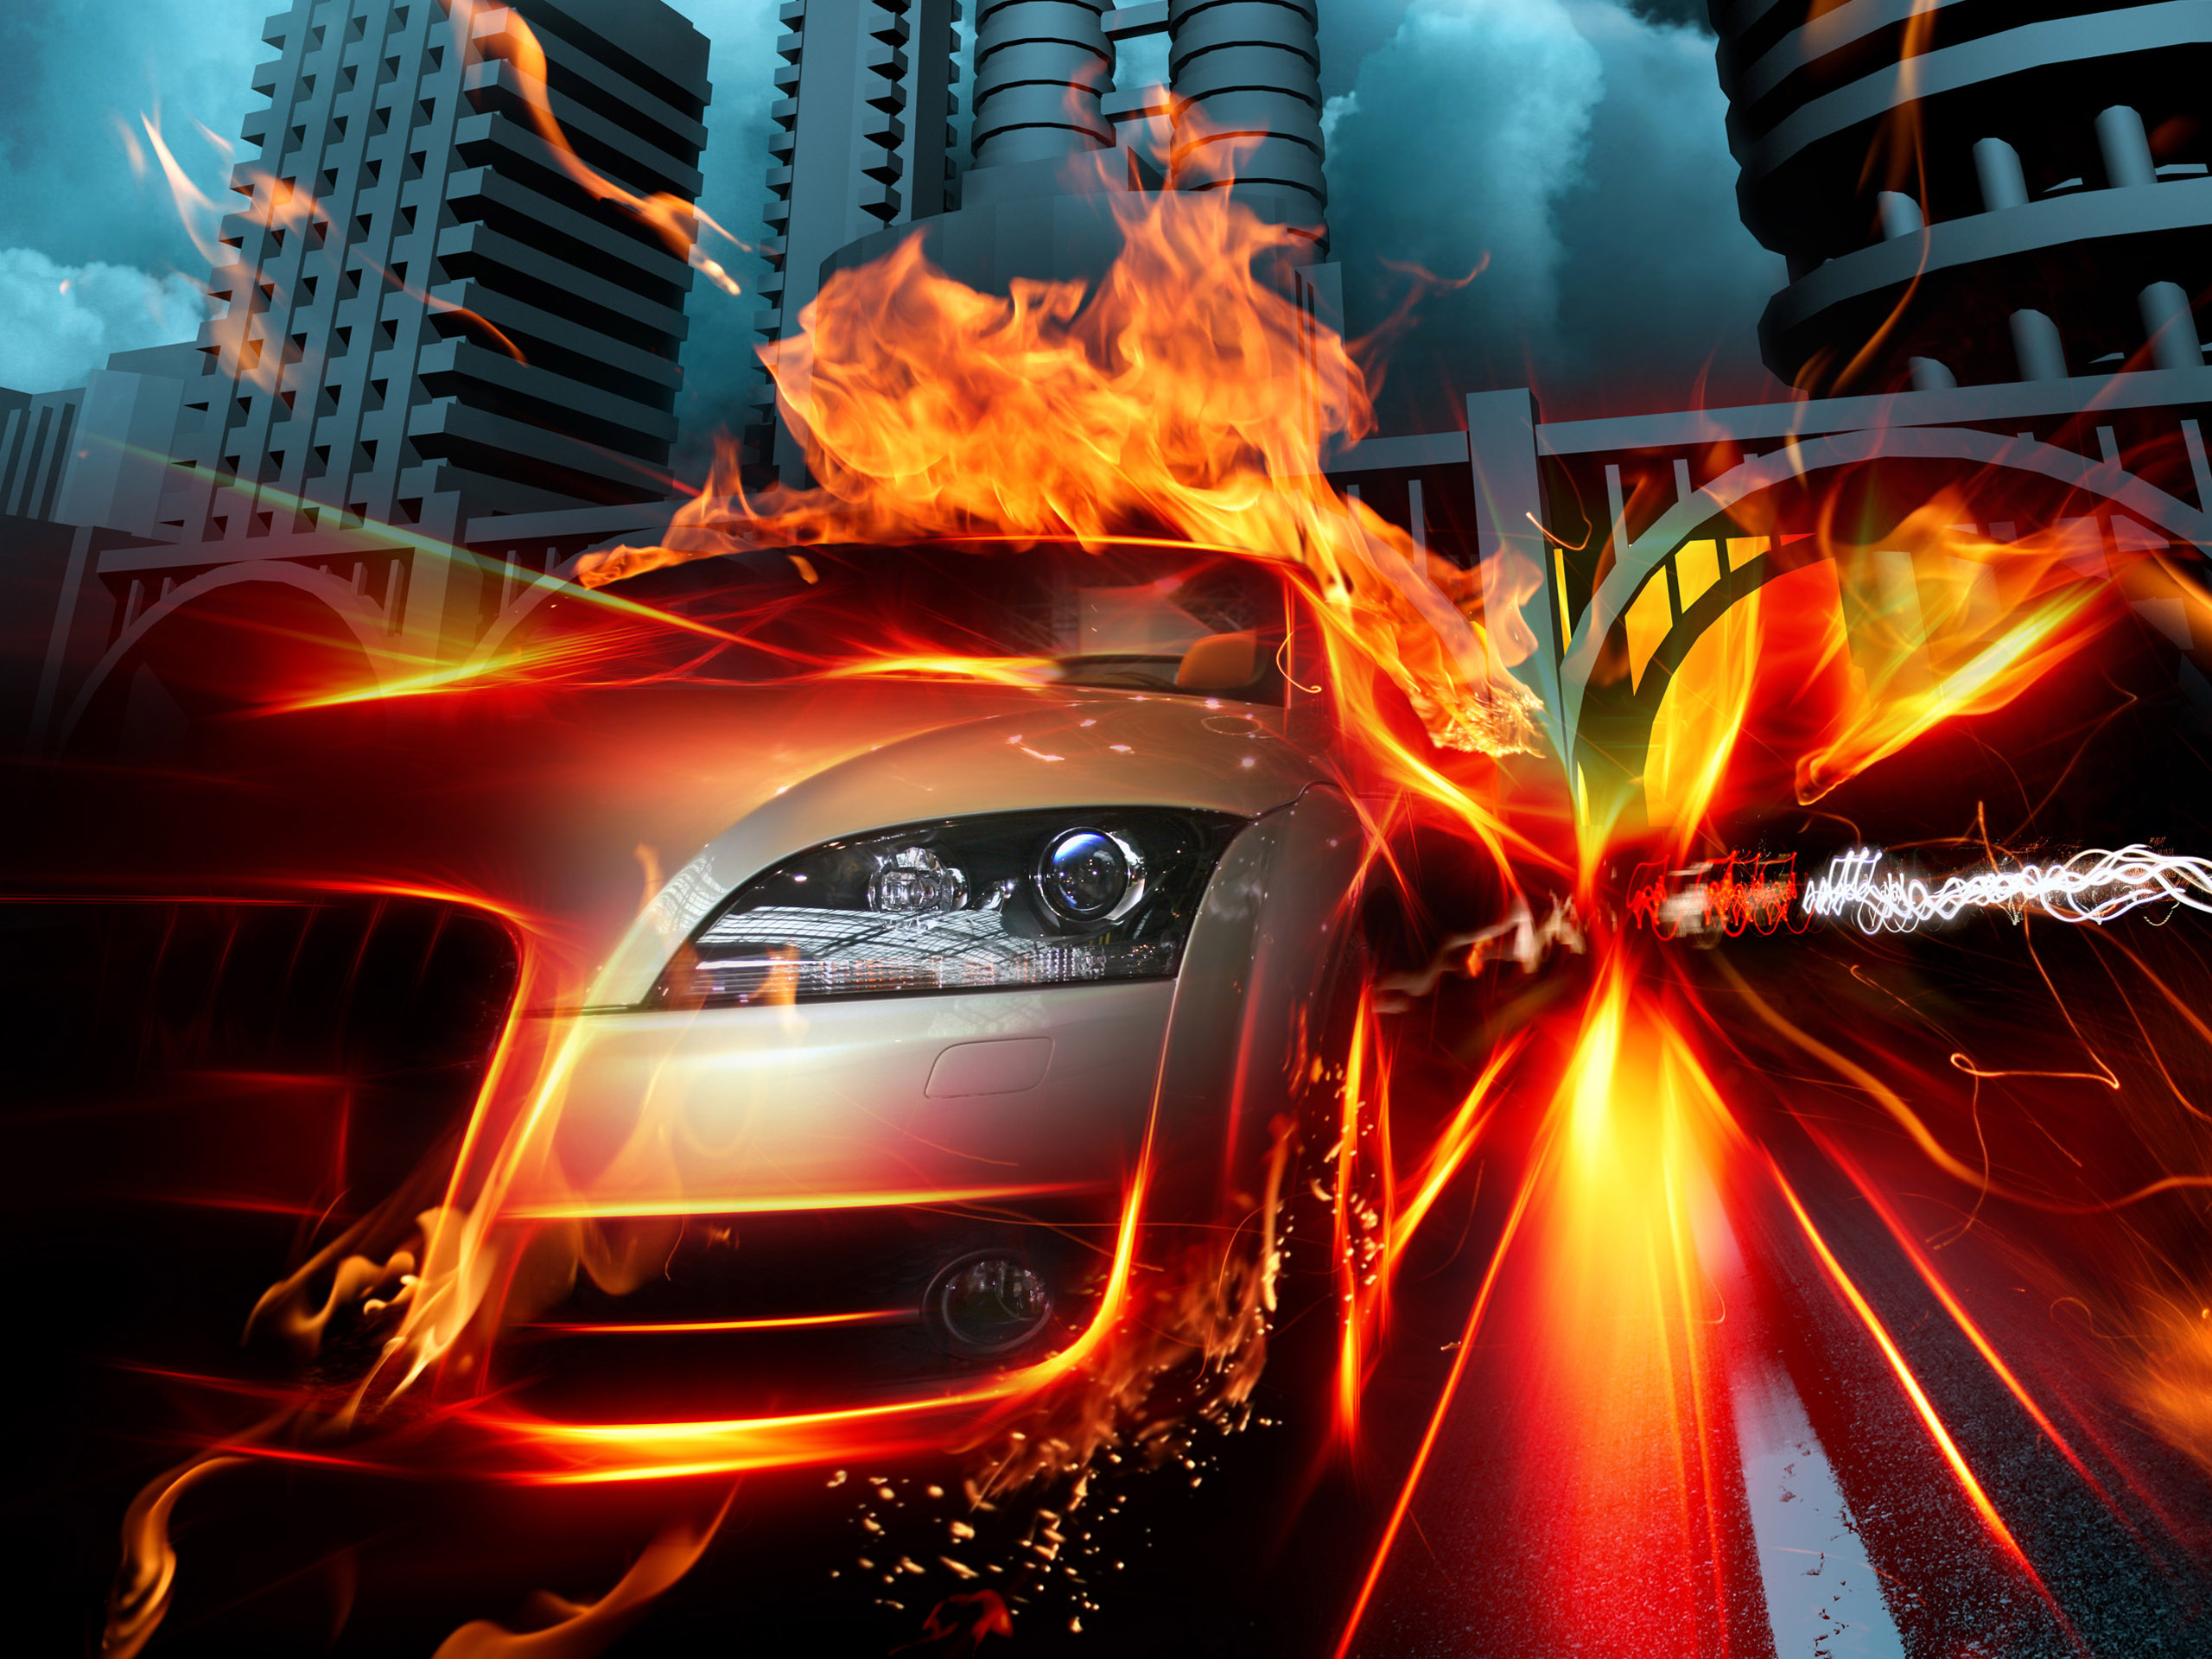 click to free download the wallpaper--Images of Cars - Car in Fire City Post in Pixel of 2560x1920, a Firing Car, Stay Away from It, Can Explode at Any Minute 2560X1920 free wallpaper download